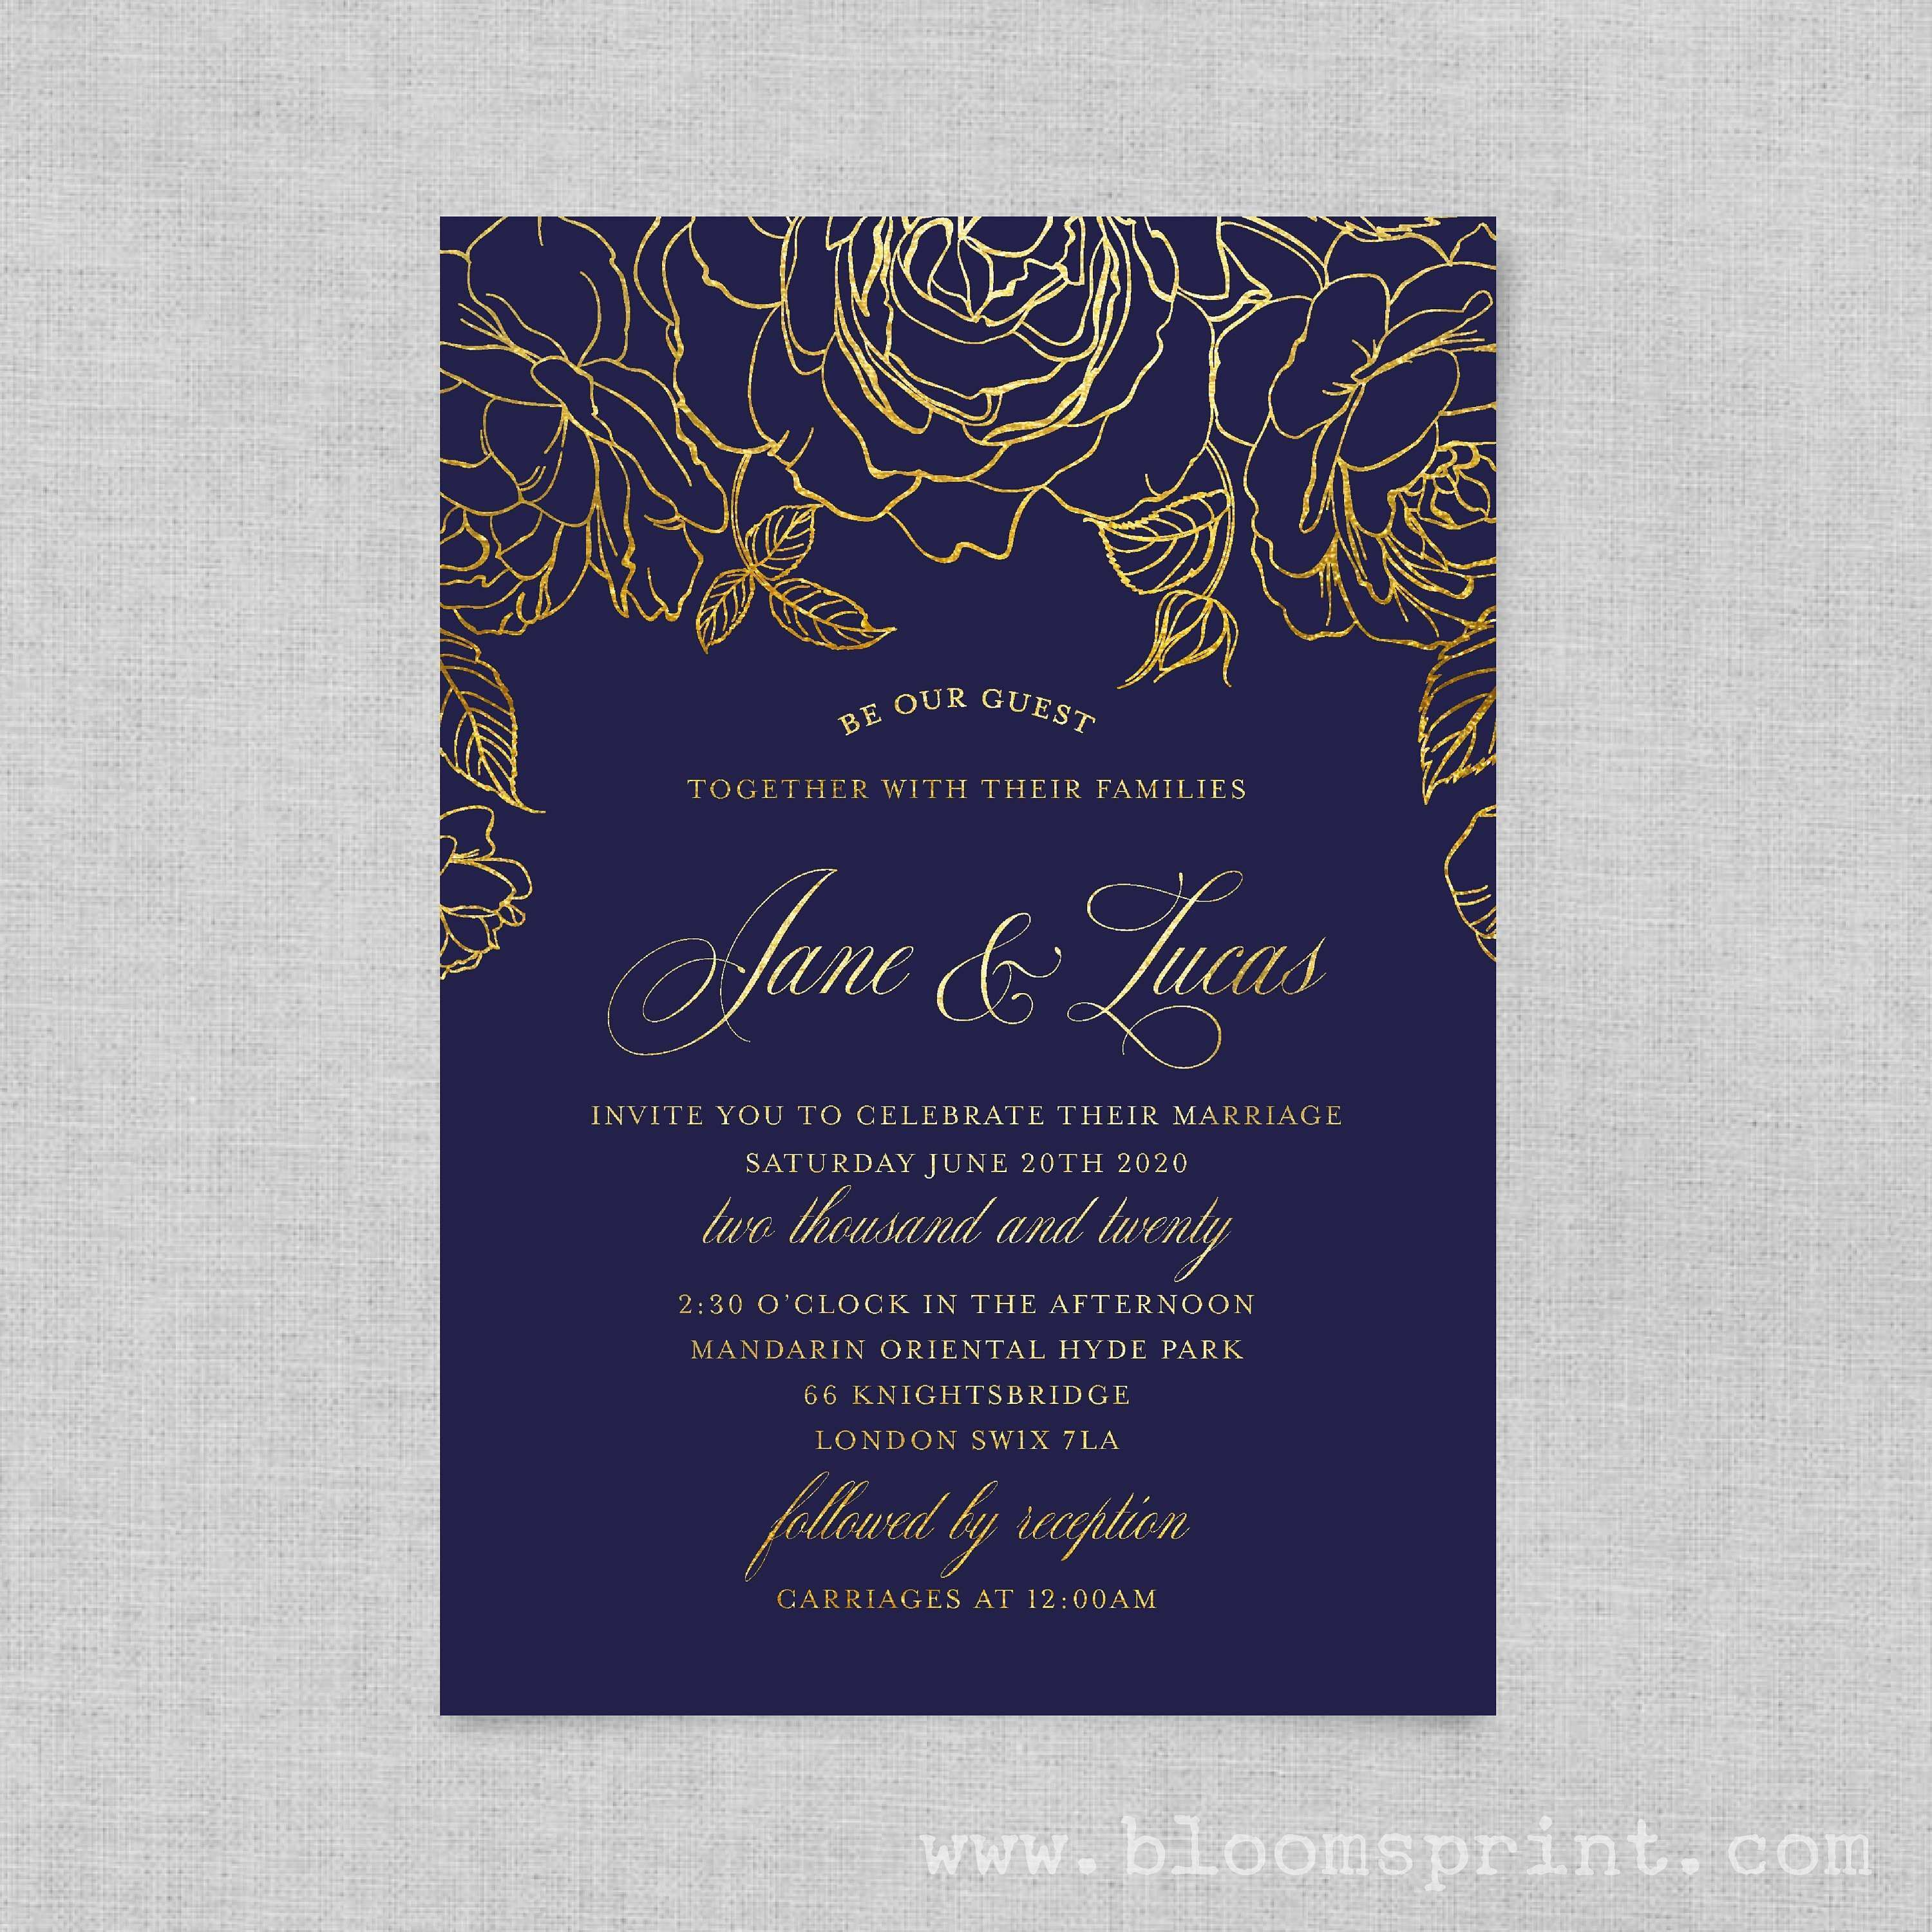 28 Free Printable Beauty And The Beast Wedding Invitation Template Free Psd File For Beauty And The Beast Wedding Invitation Template Free Cards Design Templates